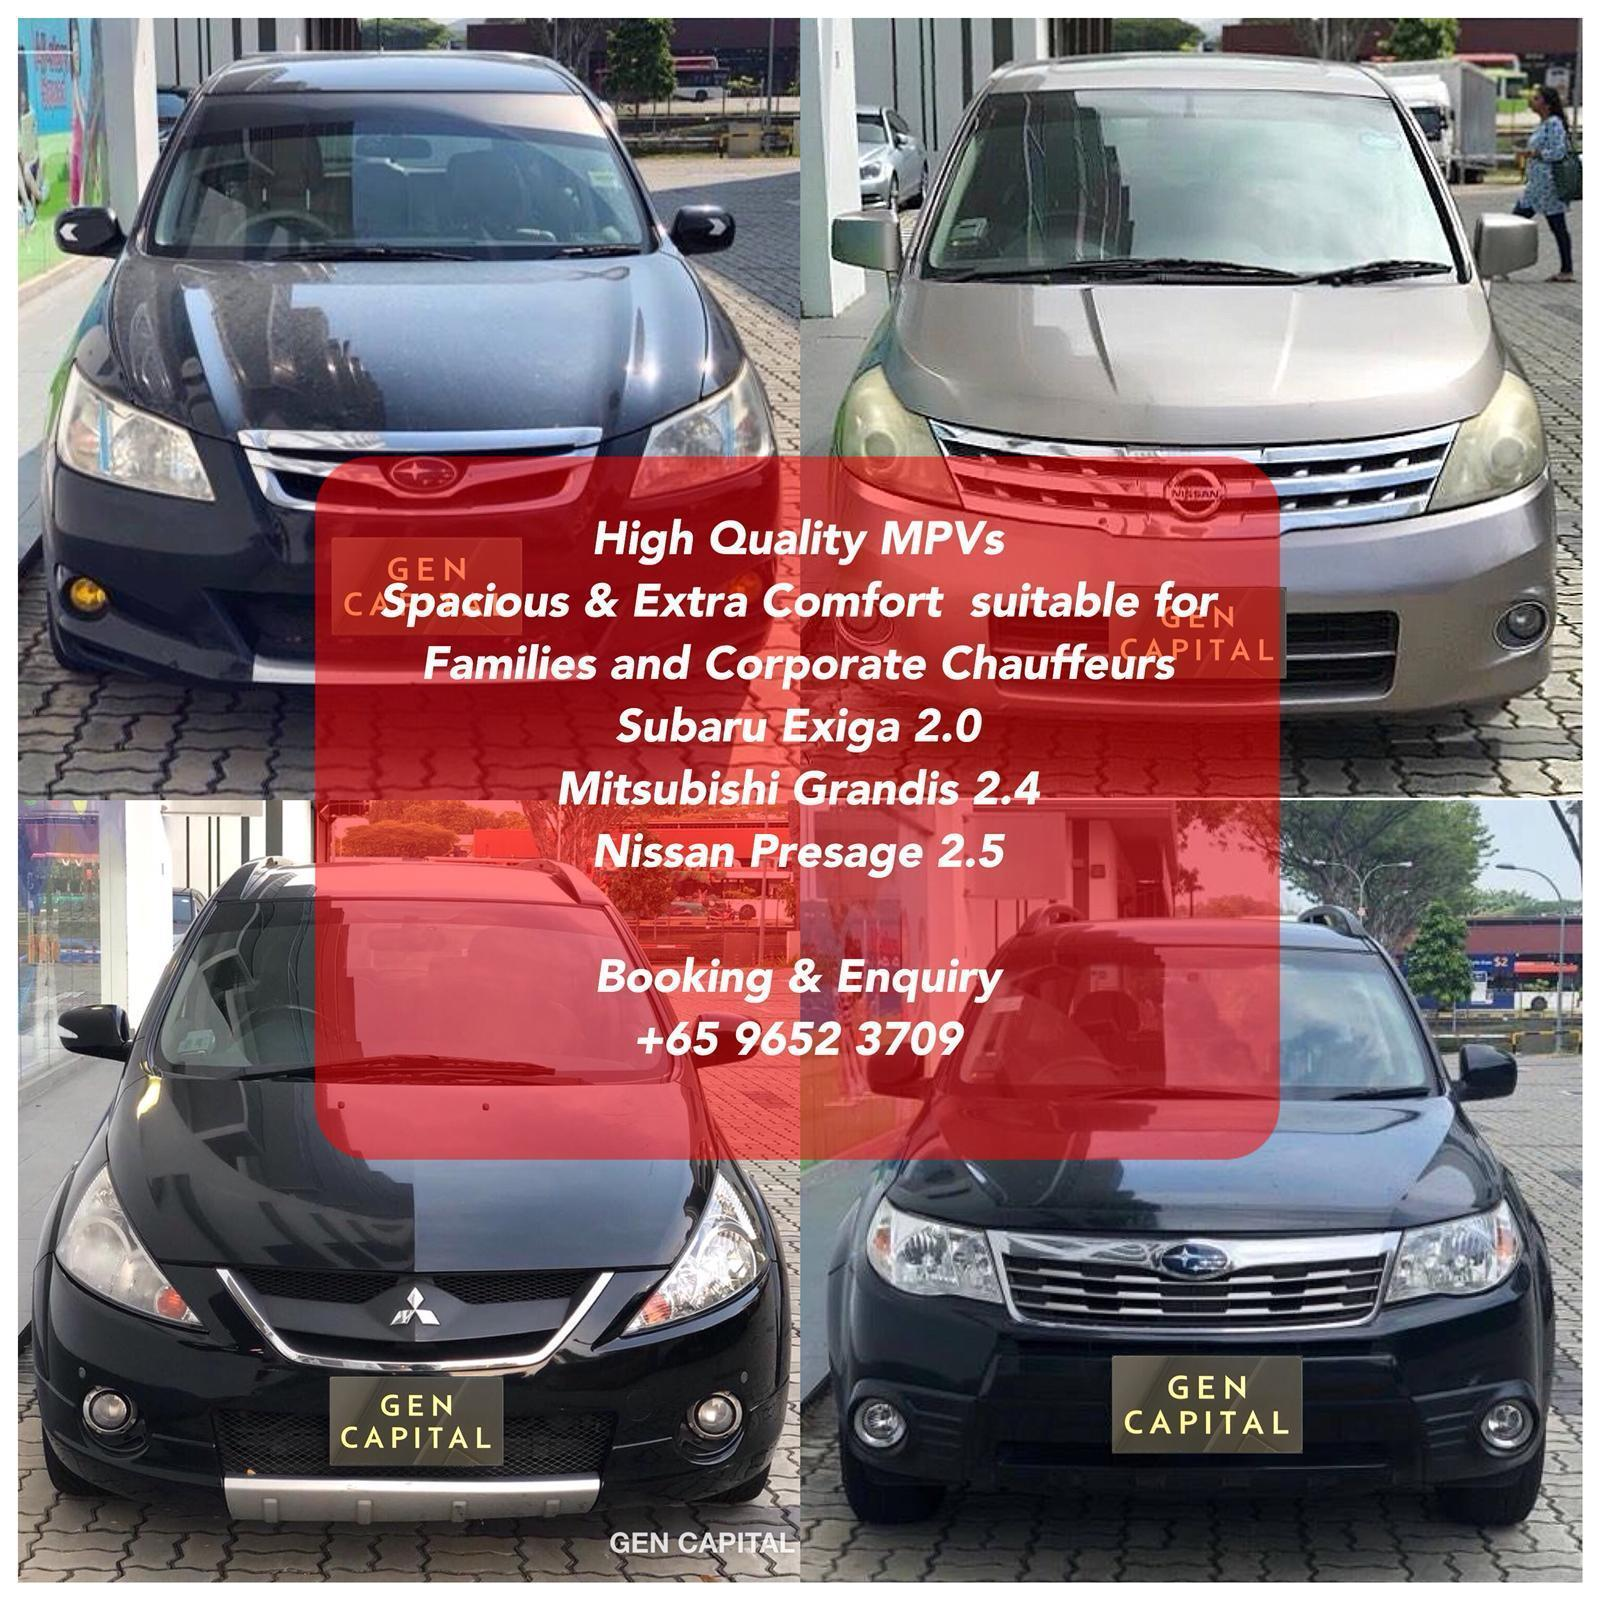 Mitsubishi Grandis Flash Deal!* PH Friendly*(Available Dates: 14 june - 25 June 2019 ONLY)